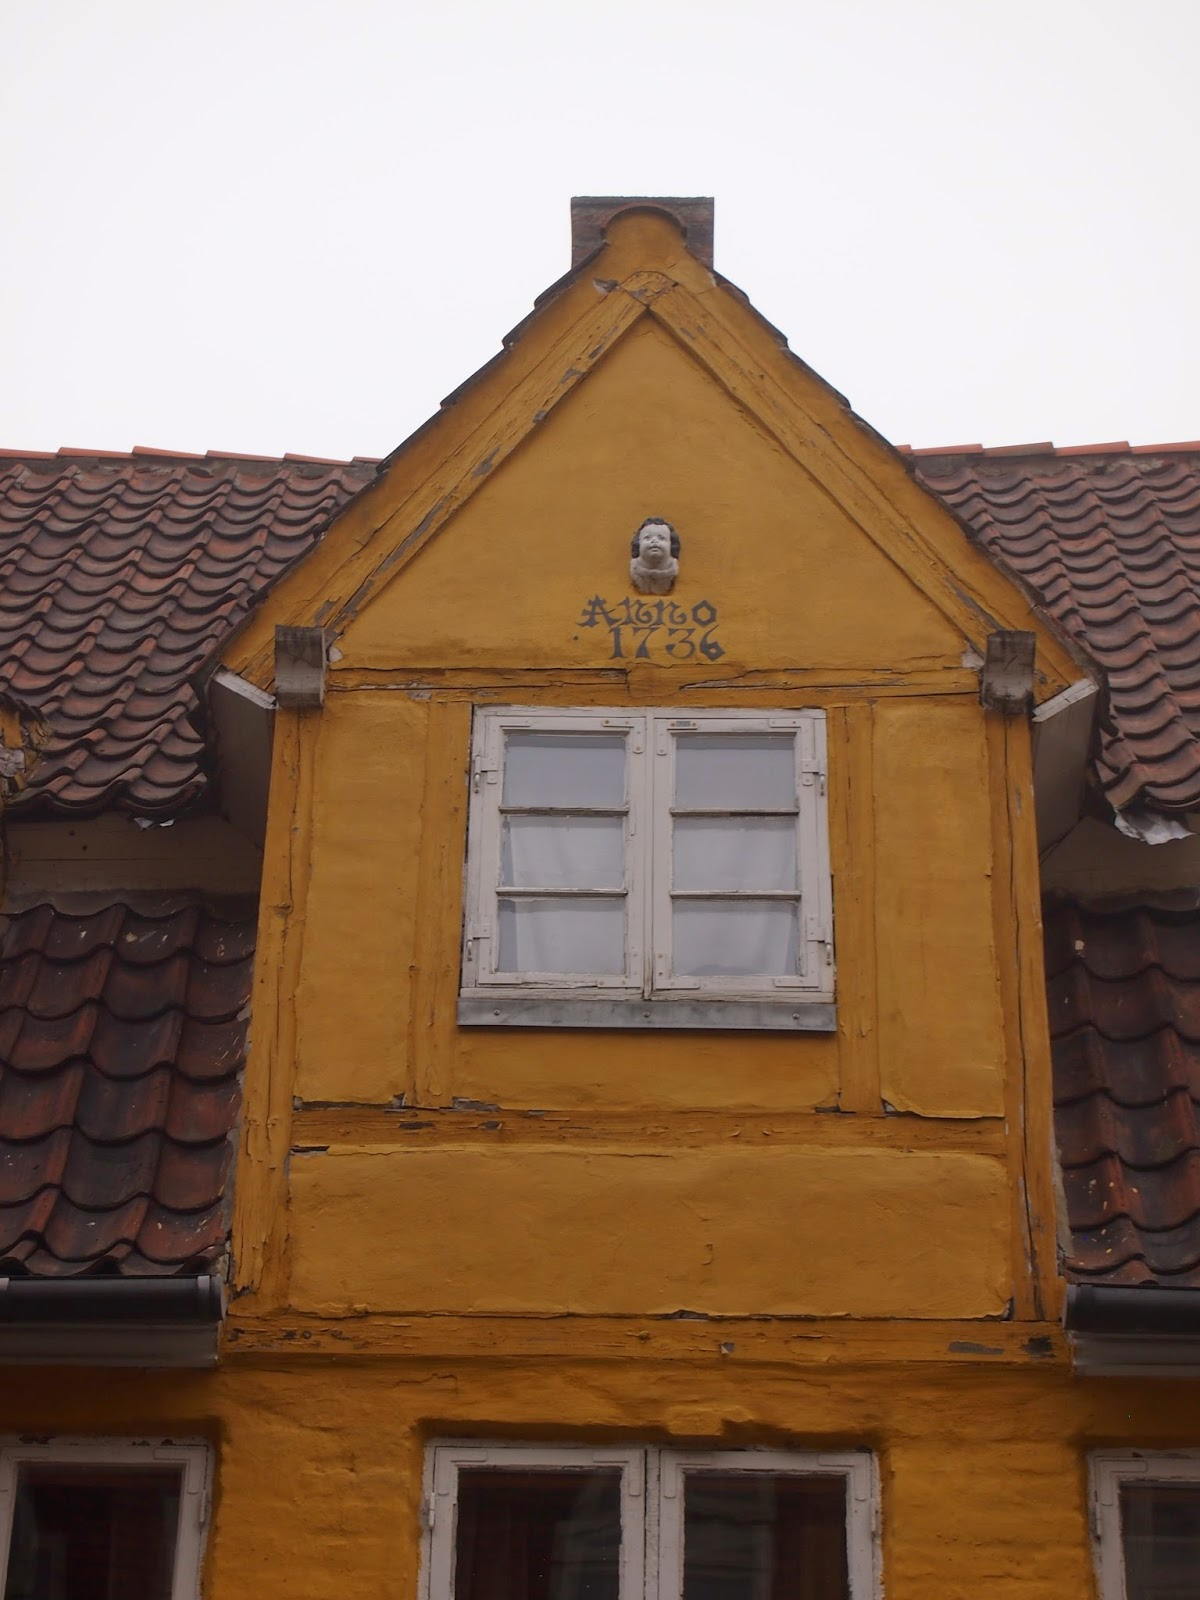 a colorful yellow house in helsingor from the 1700s